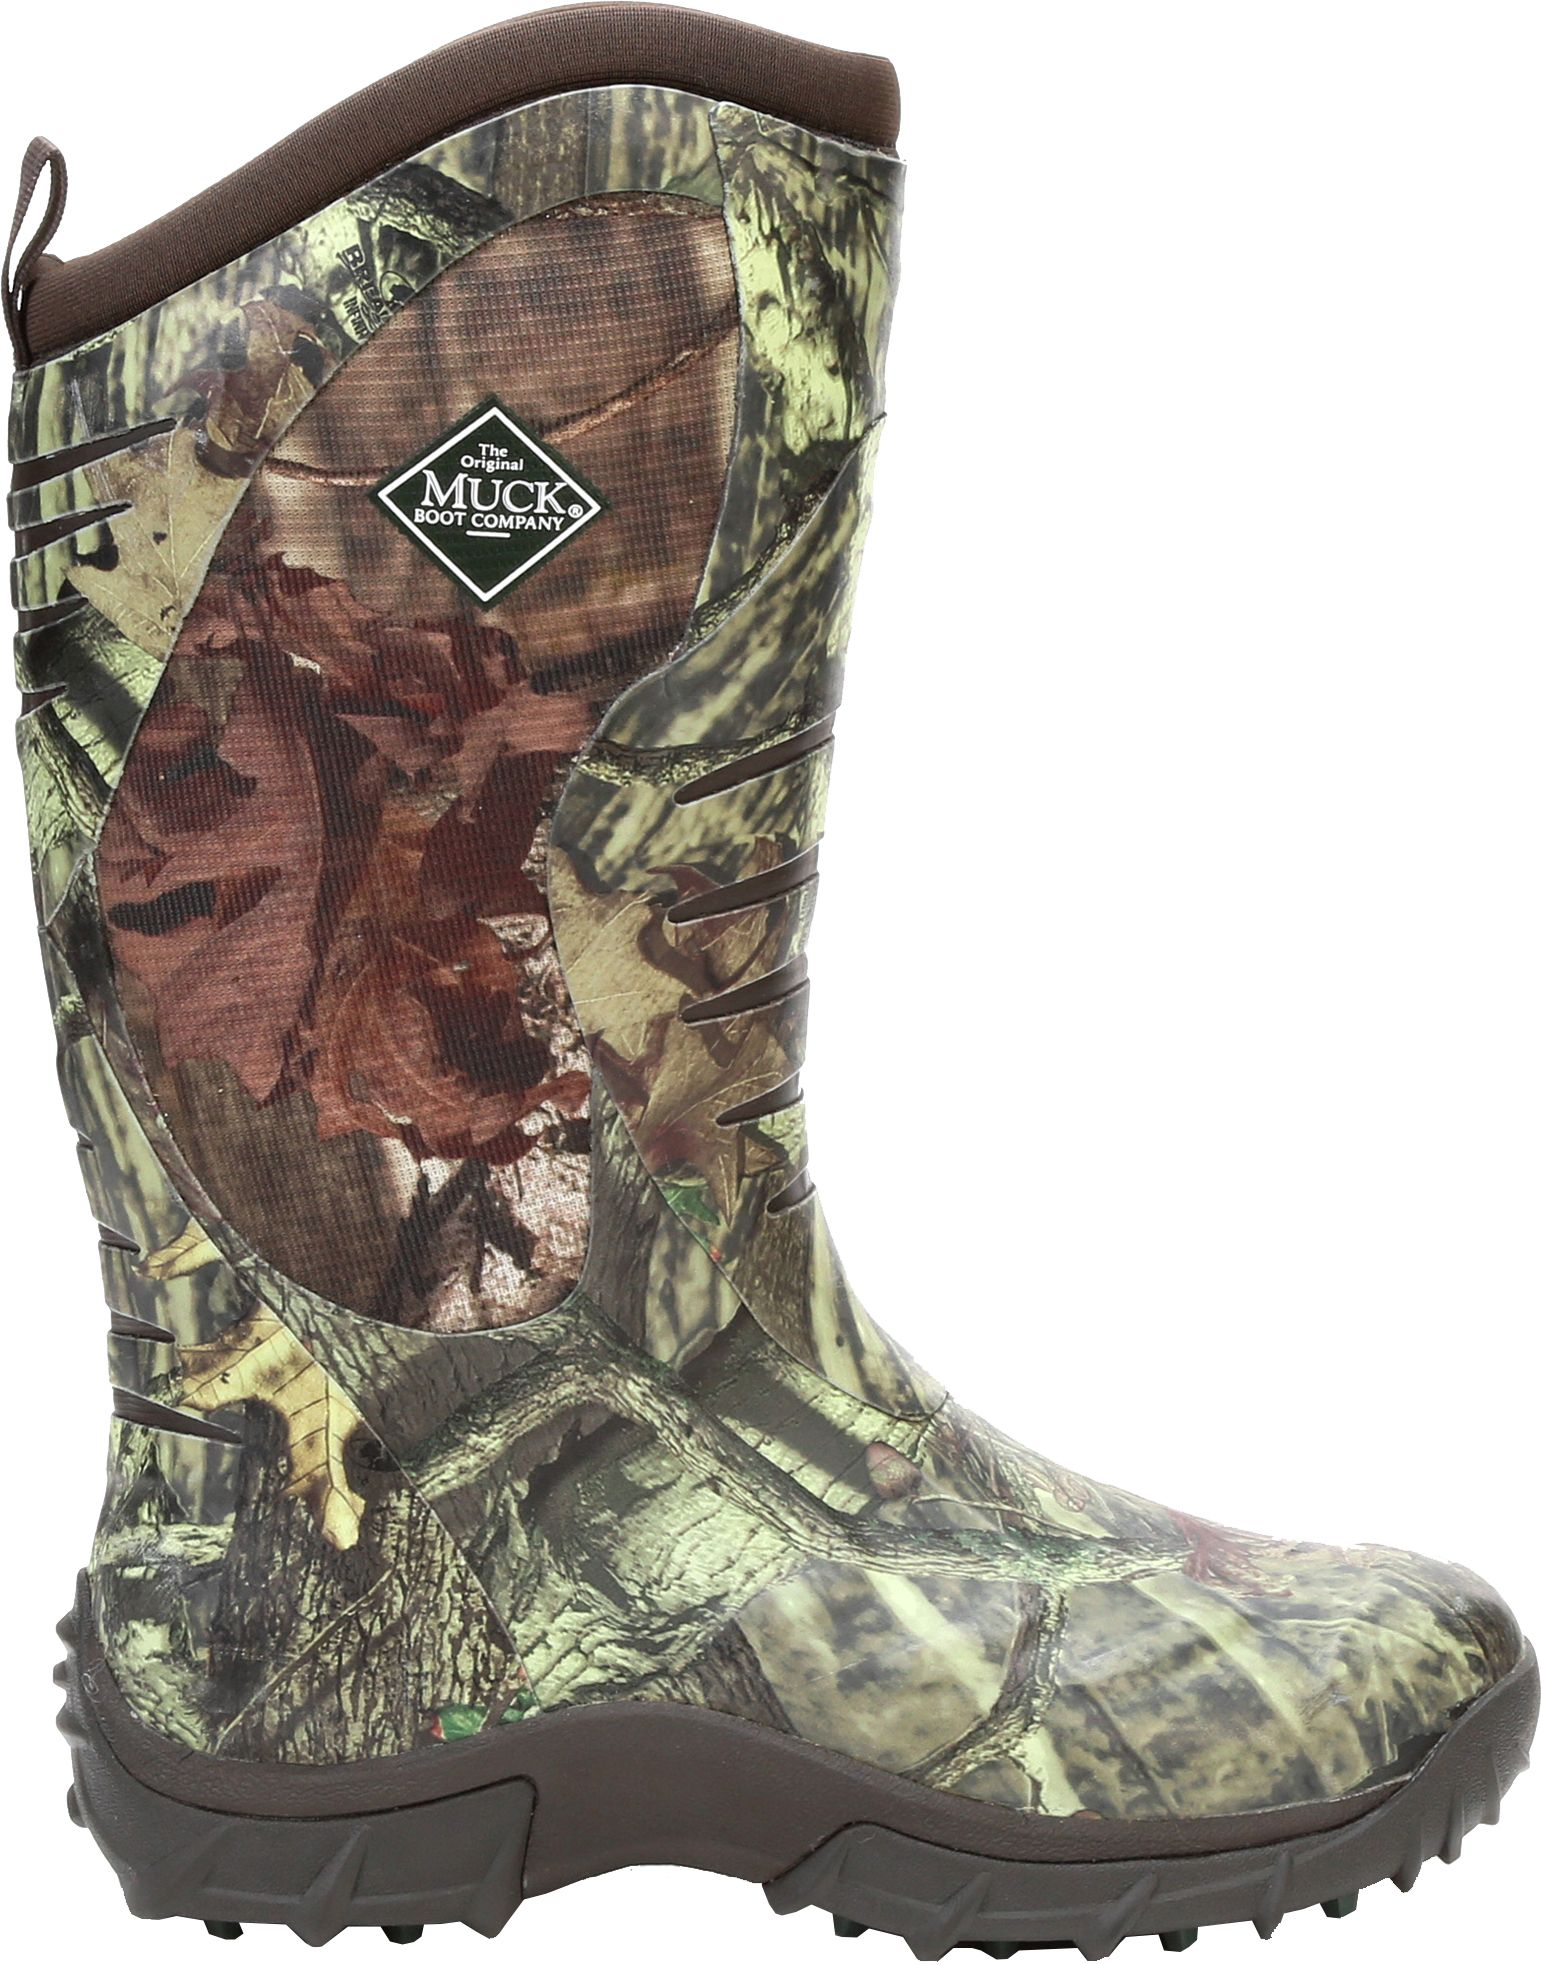 Muck Boot Men's Pursuit Stealth Mossy Oak Rubber Hunting Boots ...